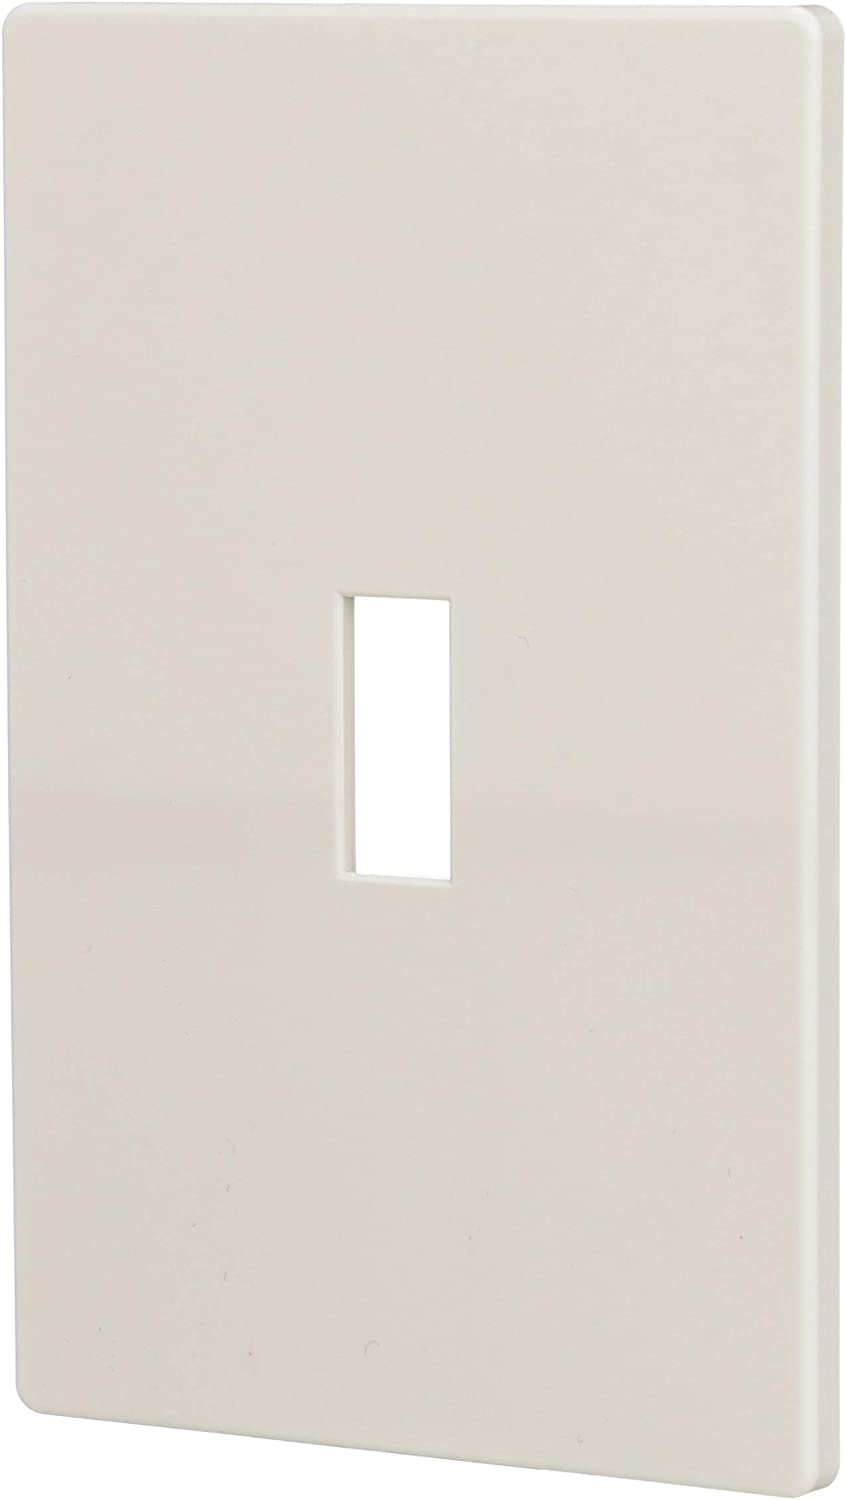 Cooper UNBREAKABLE Light Almond 1-Gang Telephone Coaxial Cable Wallplate PJ11LA